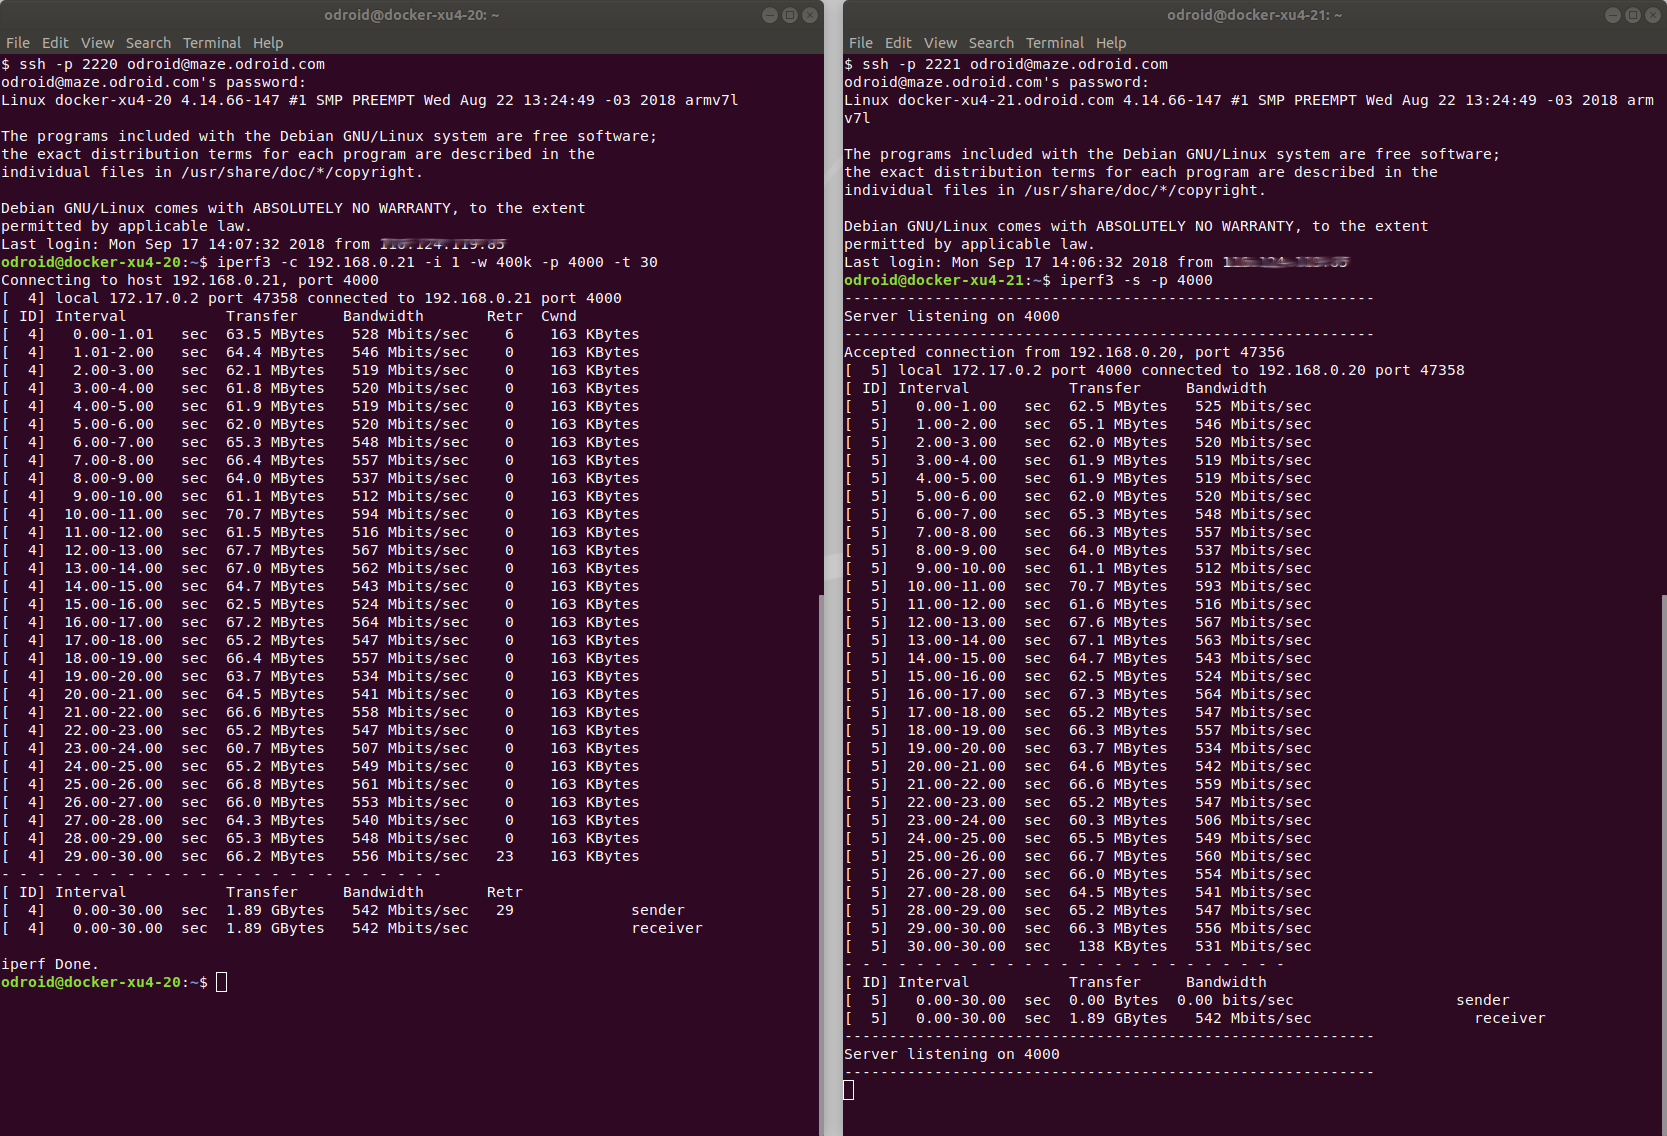 Odroid Bench Magazine Wiringpi Cpu Usage Figure 7 Running Iperf3 To Measure The Network Bandwidth Between Two Sbcs